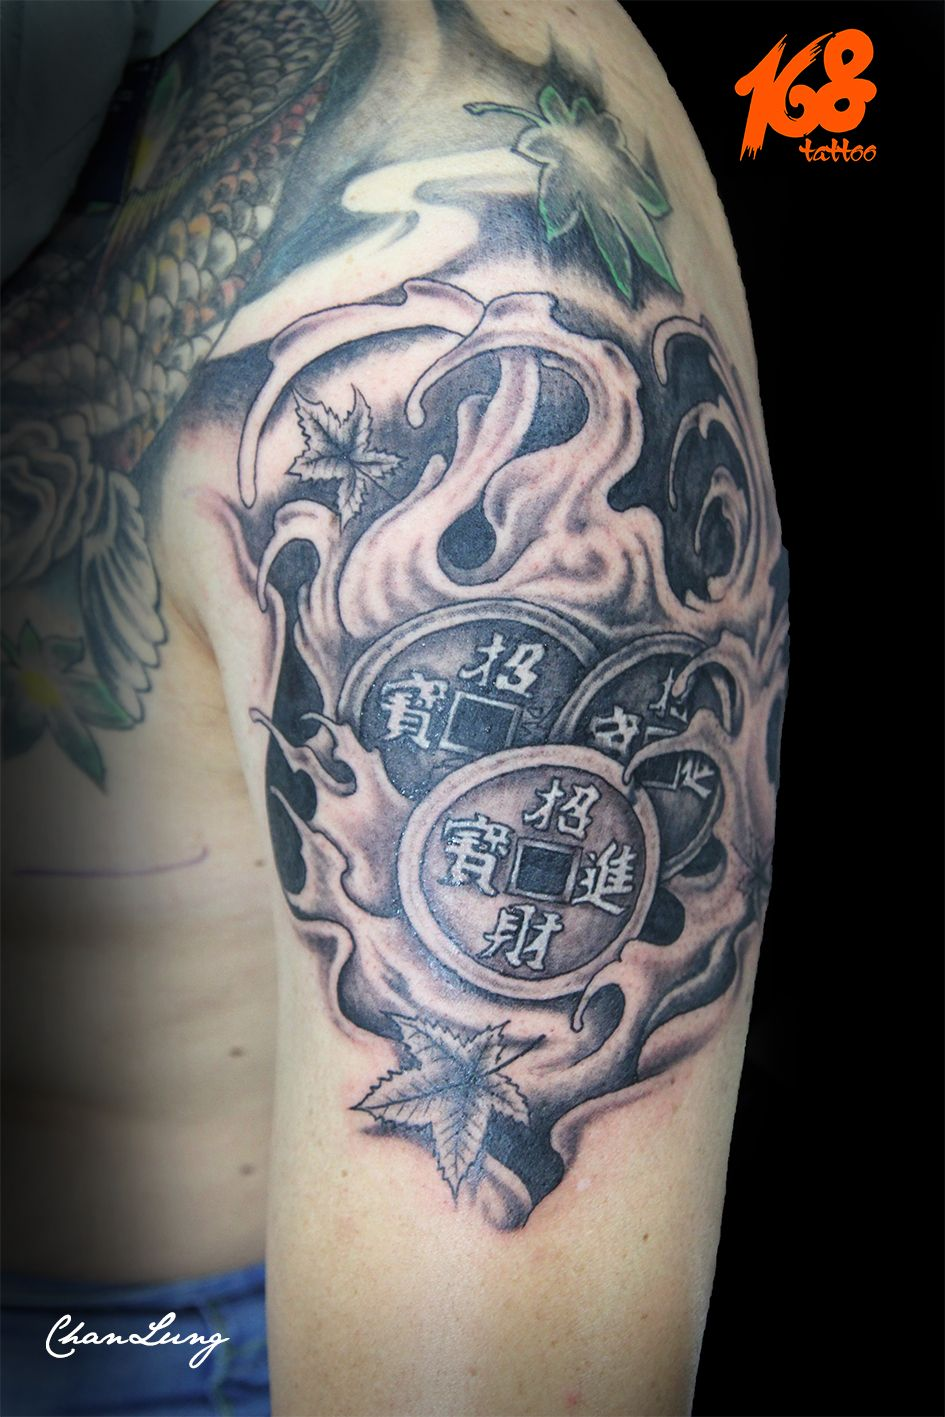 luck Chinese coin tattoo | my Tattoo artwork | Tattoos, Cool tattoos